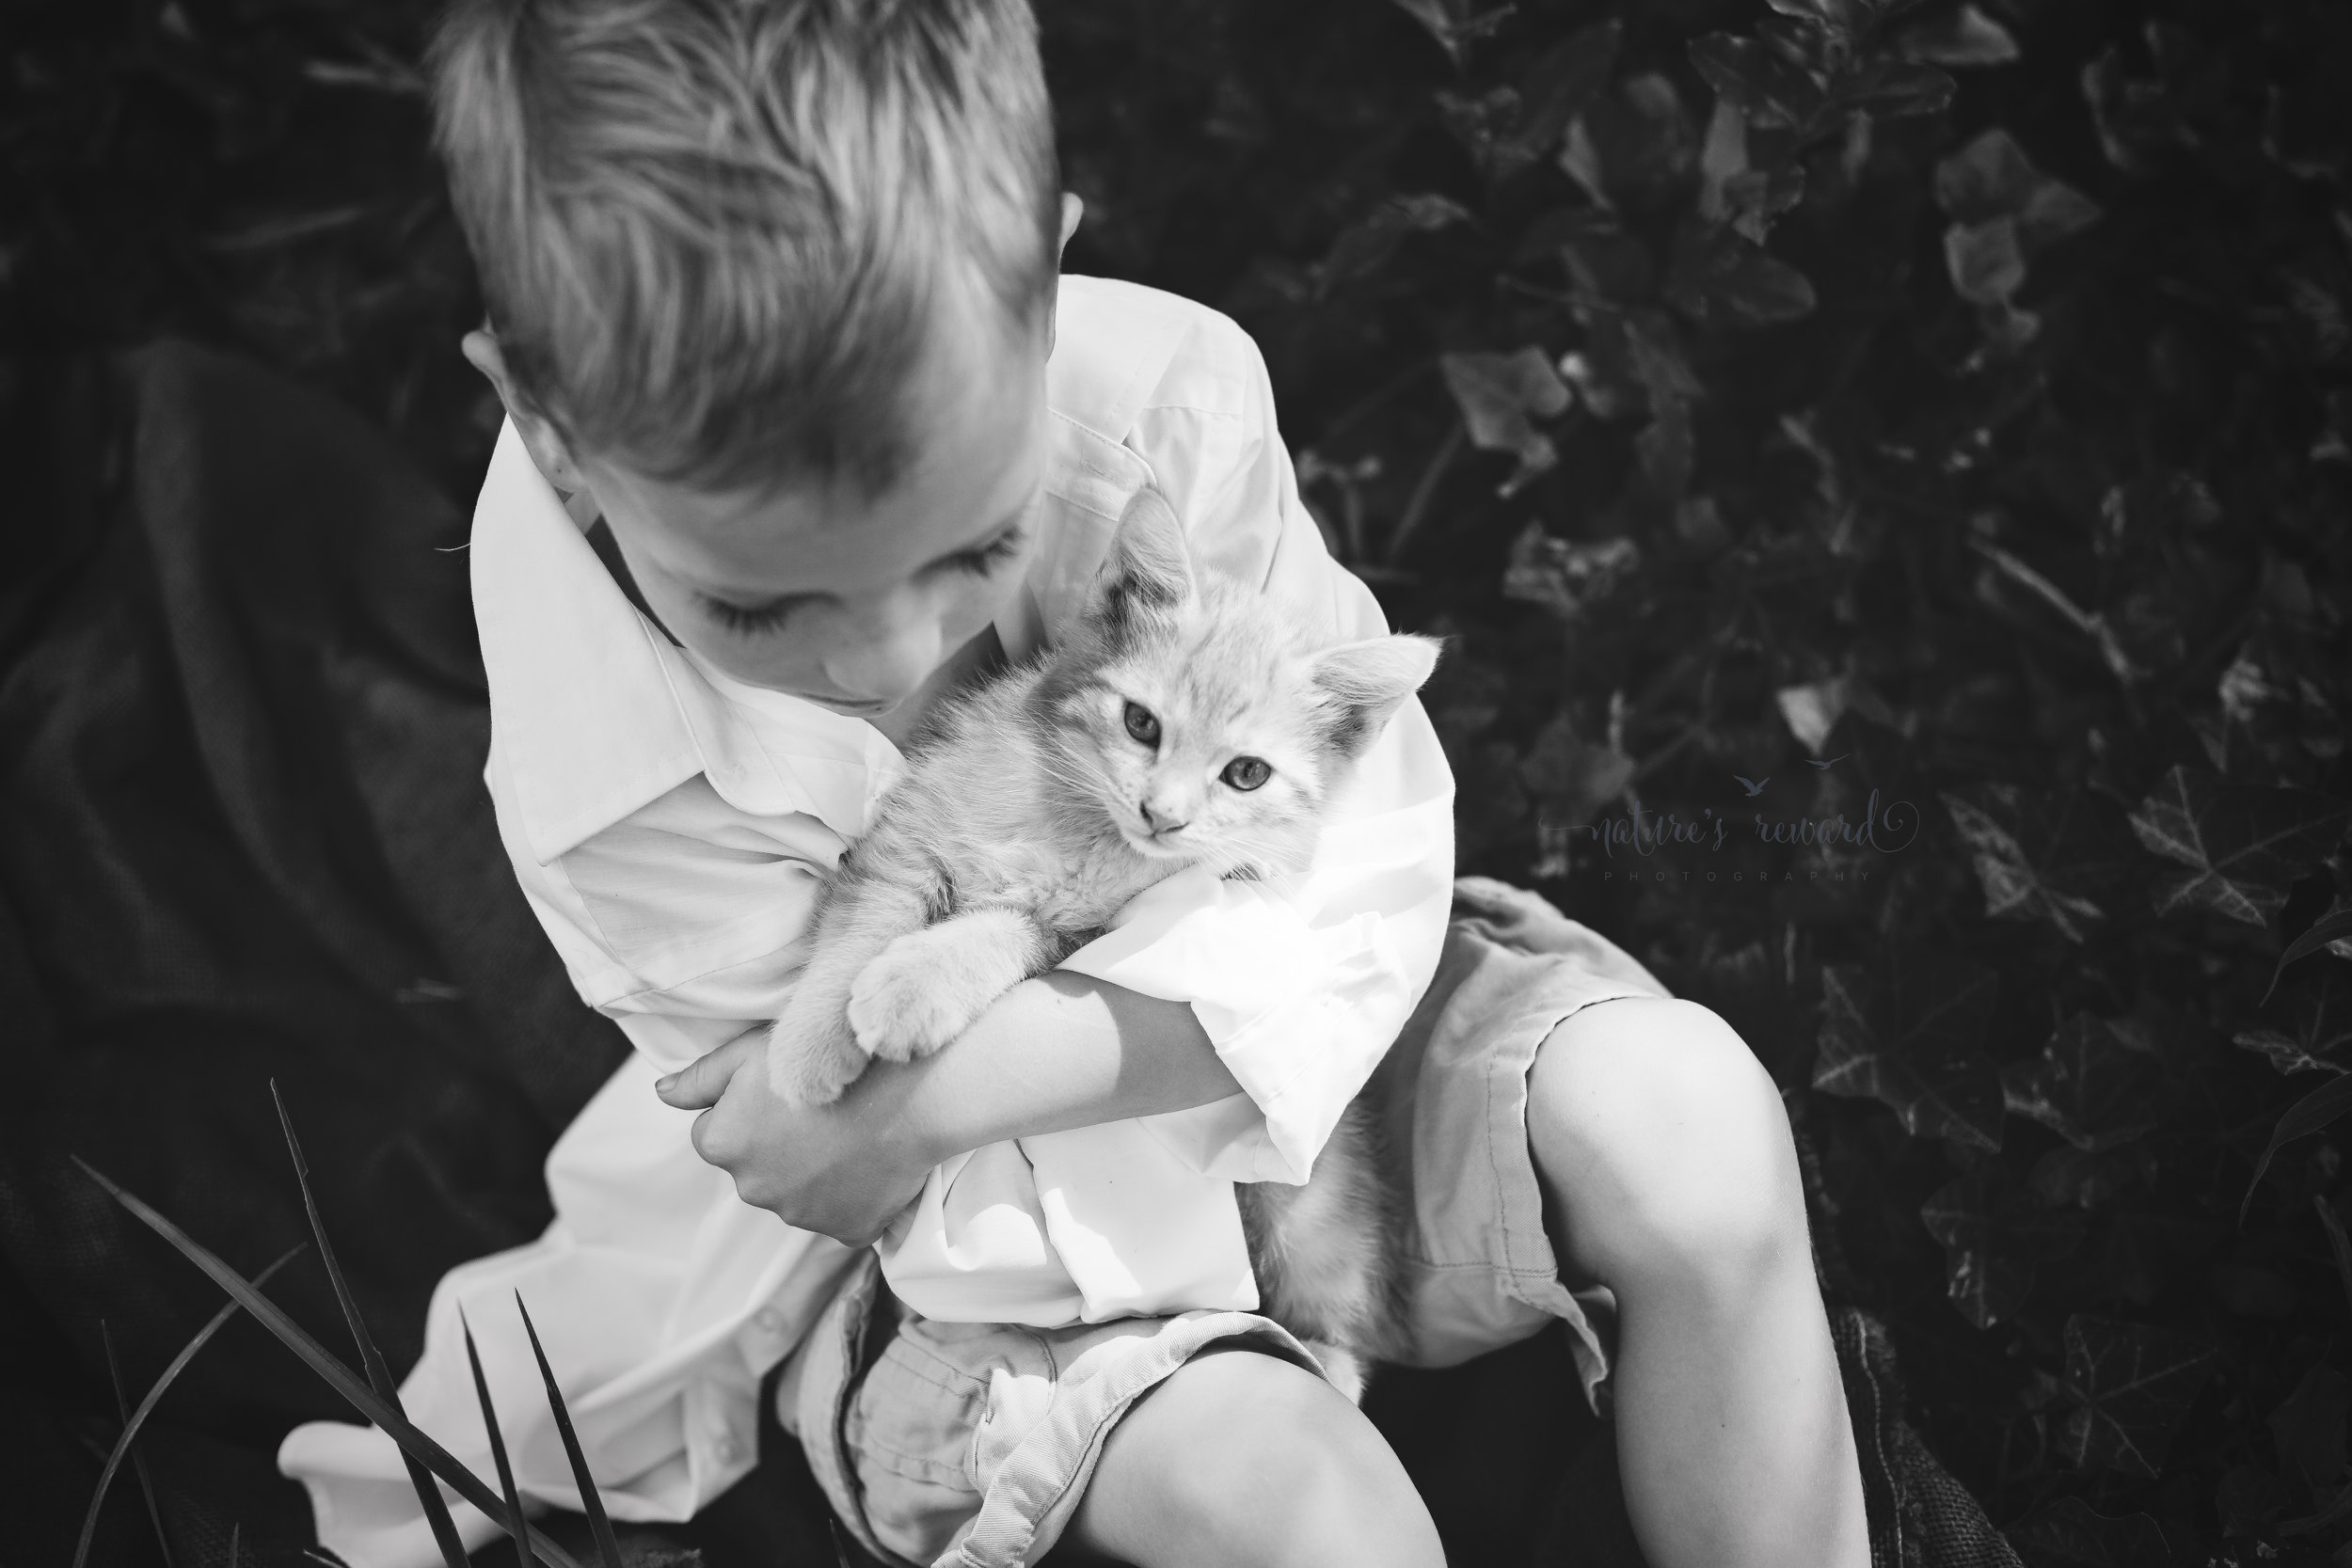 And Caden Cuddled the cat in a sweet armful of furry kitten. The light caught in the kitten's eye. I prefer candid shots in black and white- and this one is no exception.